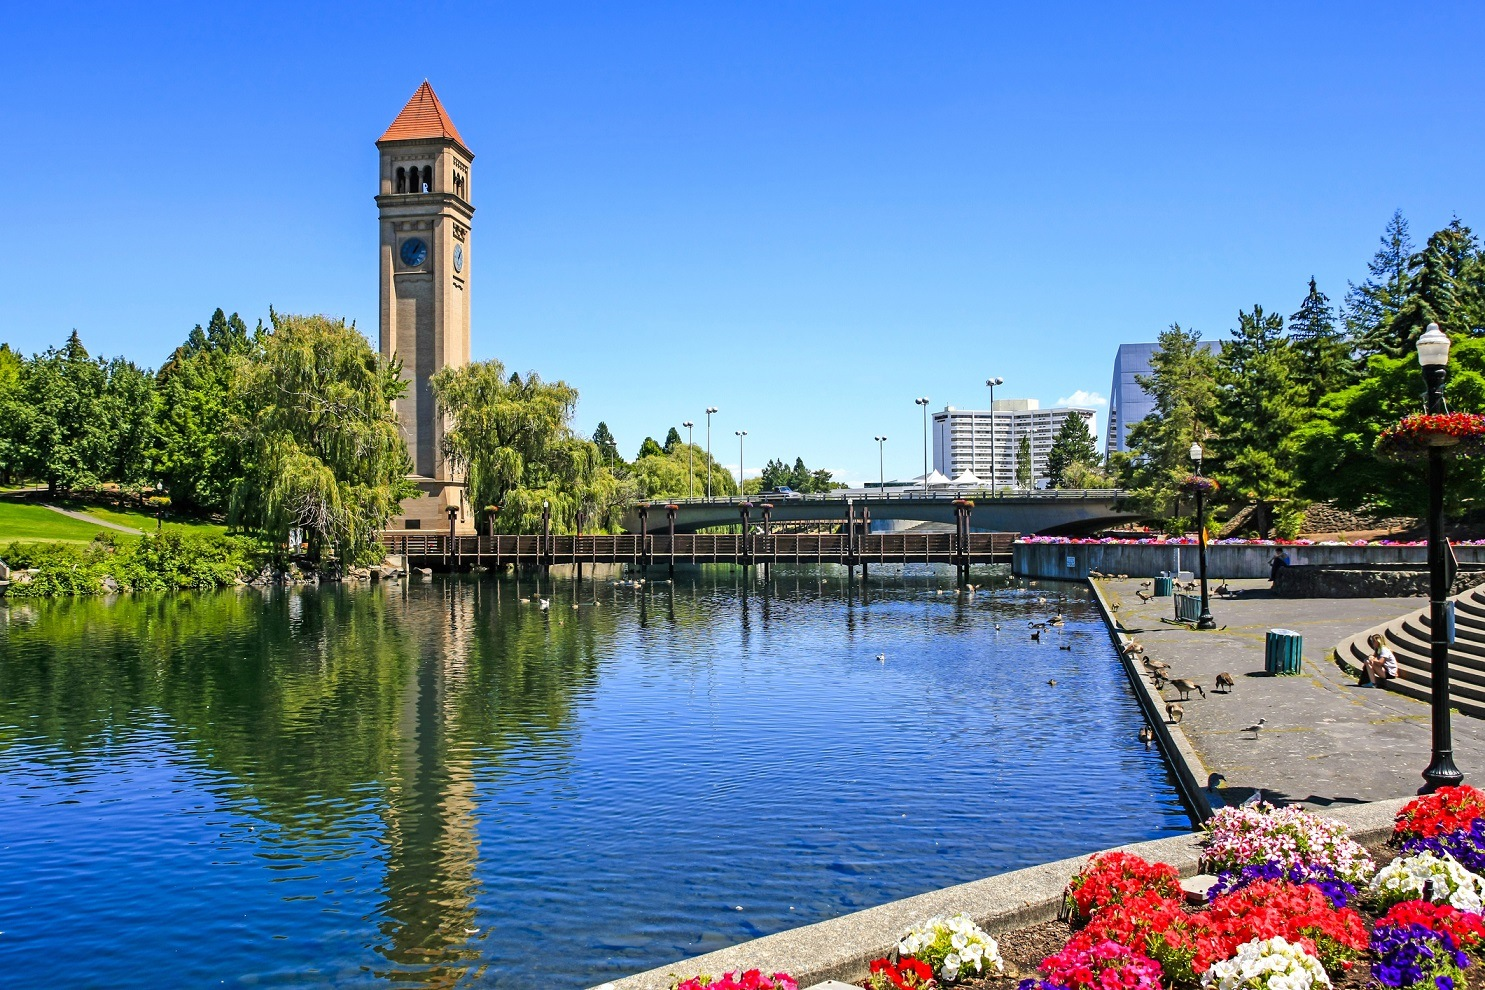 Spokane, Washington